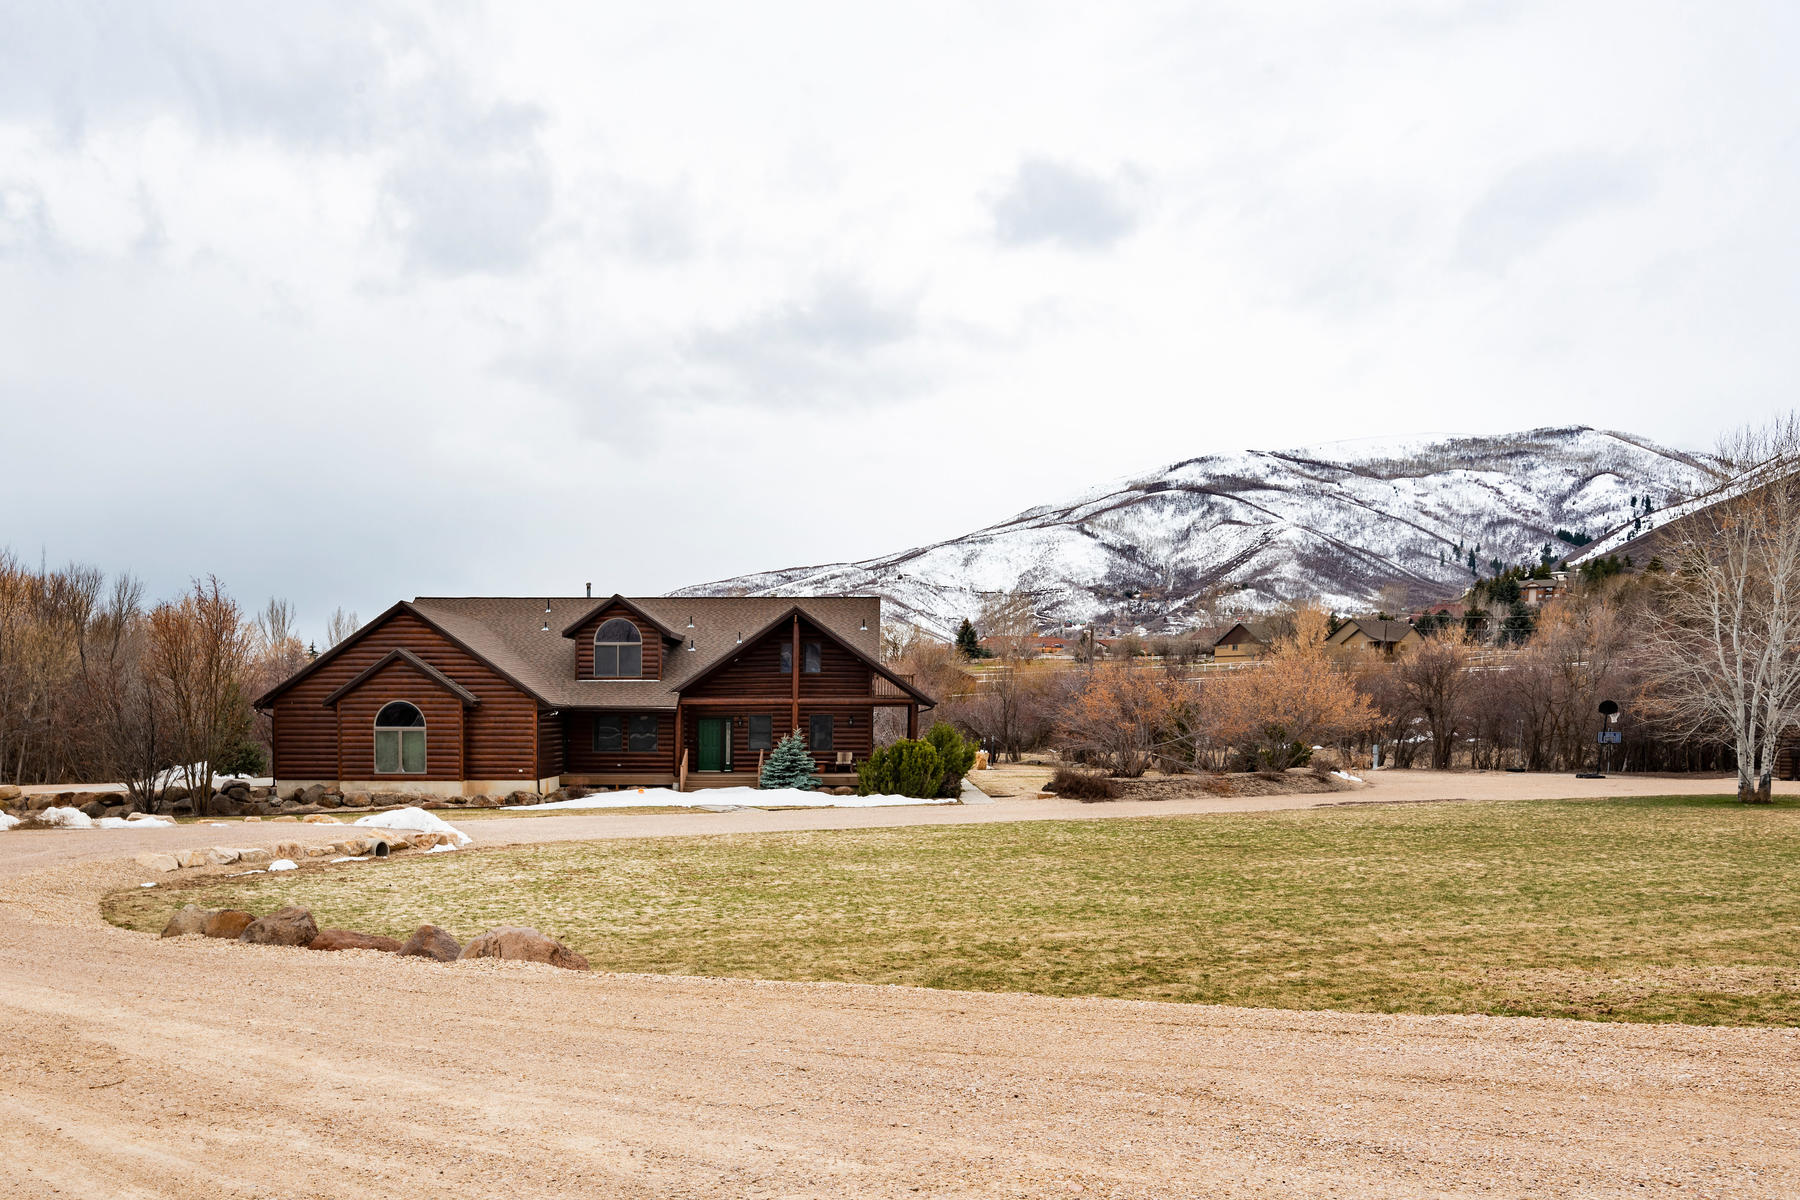 Single Family Homes için Satış at Custom Log Home on 3.4 Acres 535 Cari Lane, Midway, Utah 84049 Amerika Birleşik Devletleri